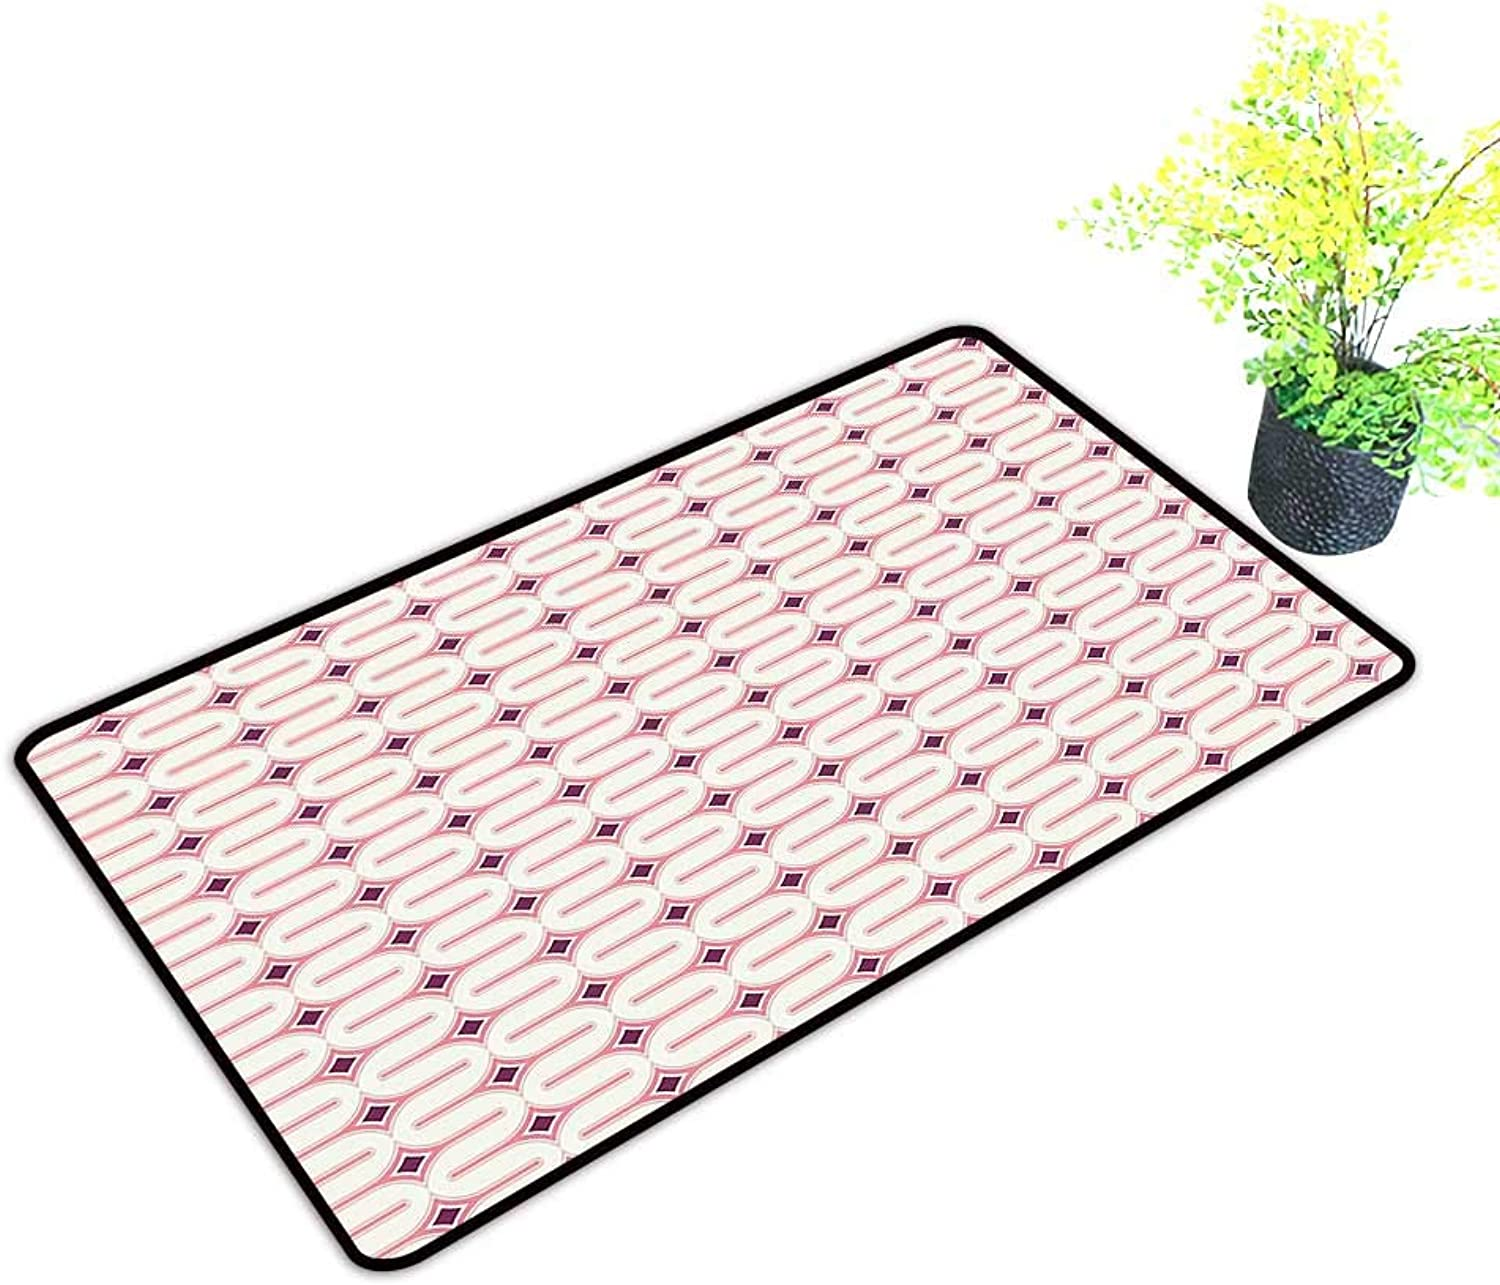 Gmnalahome Front Welcome Entrance Door Mats Ornamental Geometric Forms Artistic Decorative Background Light Pink Marigold Cream Home Decor Rug Mats W39 x H19 INCH